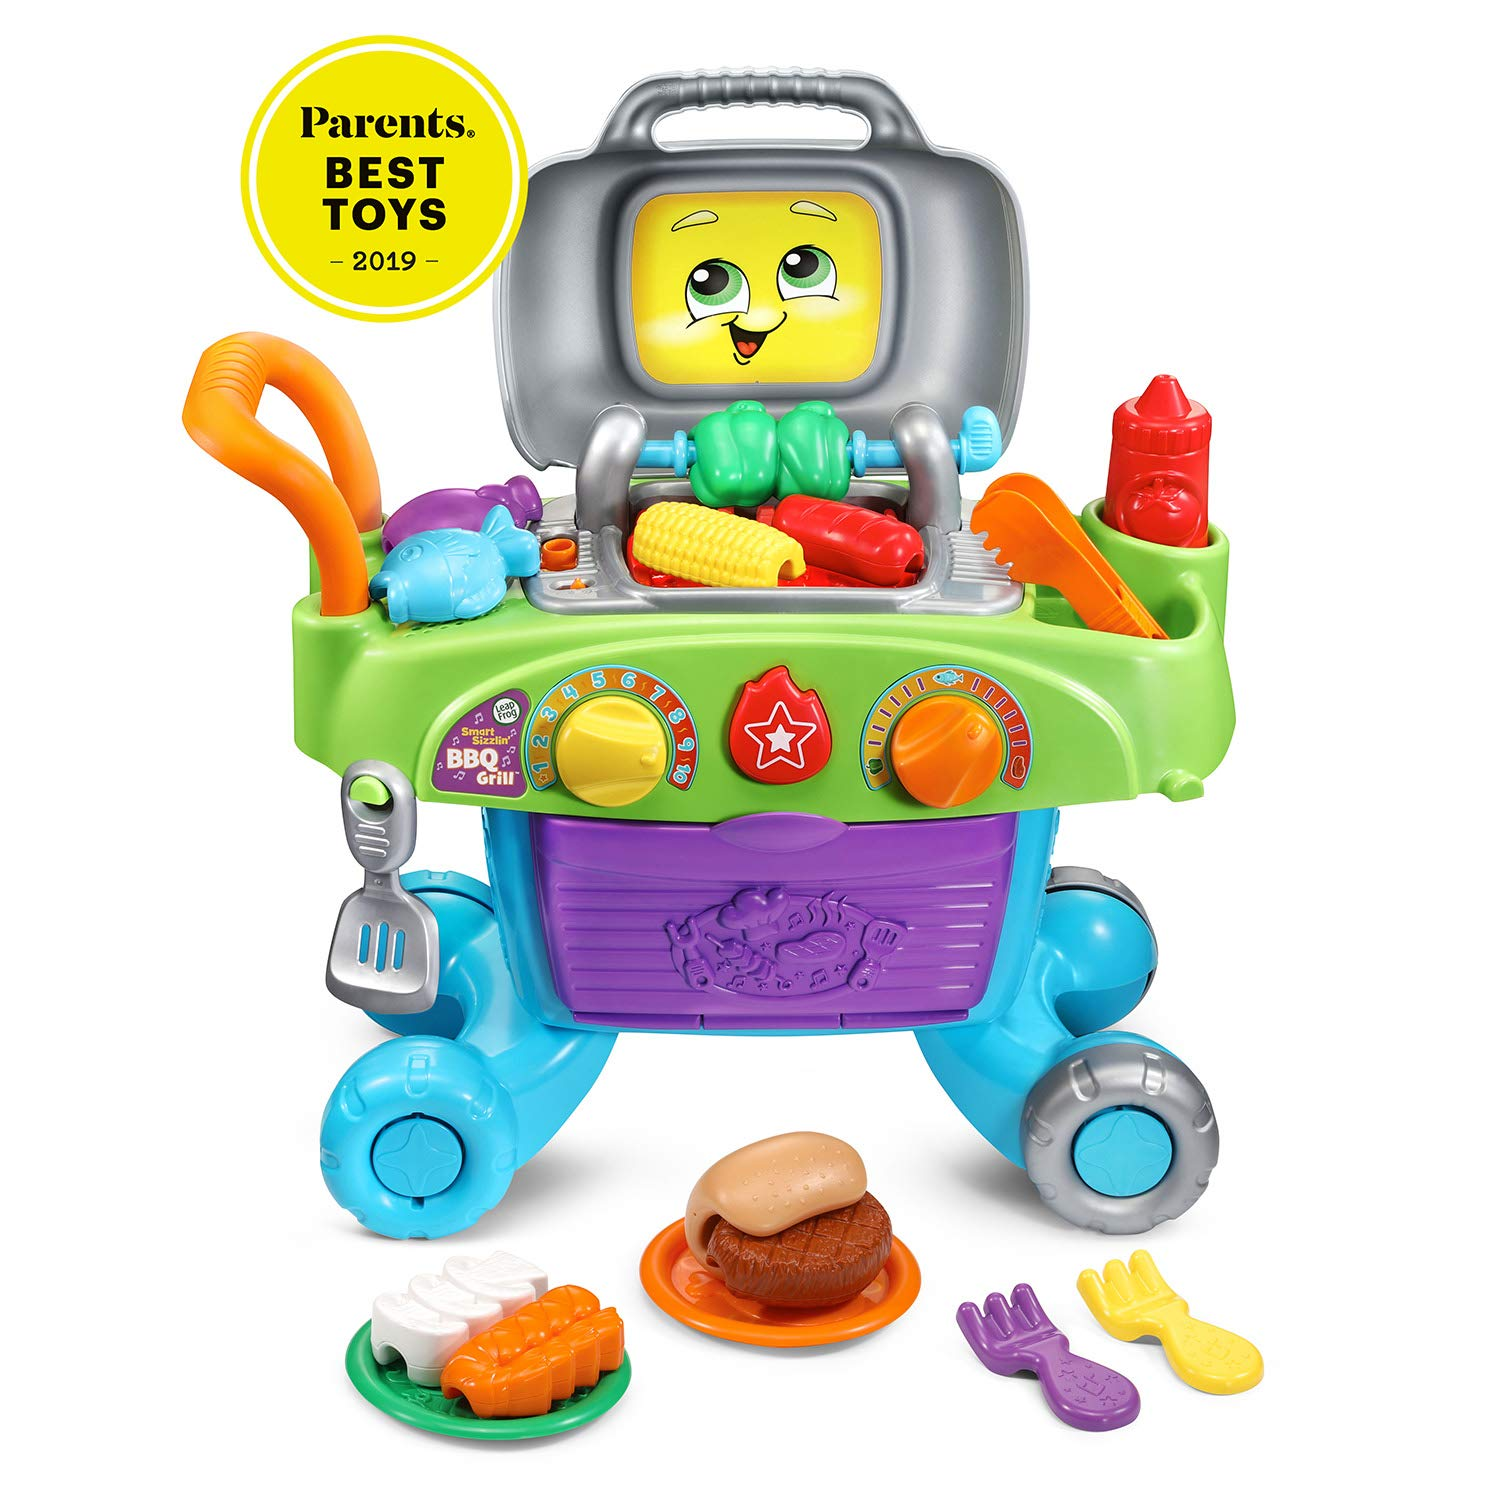 LeapFrog Smart Sizzlin' BBQ Grill by LeapFrog